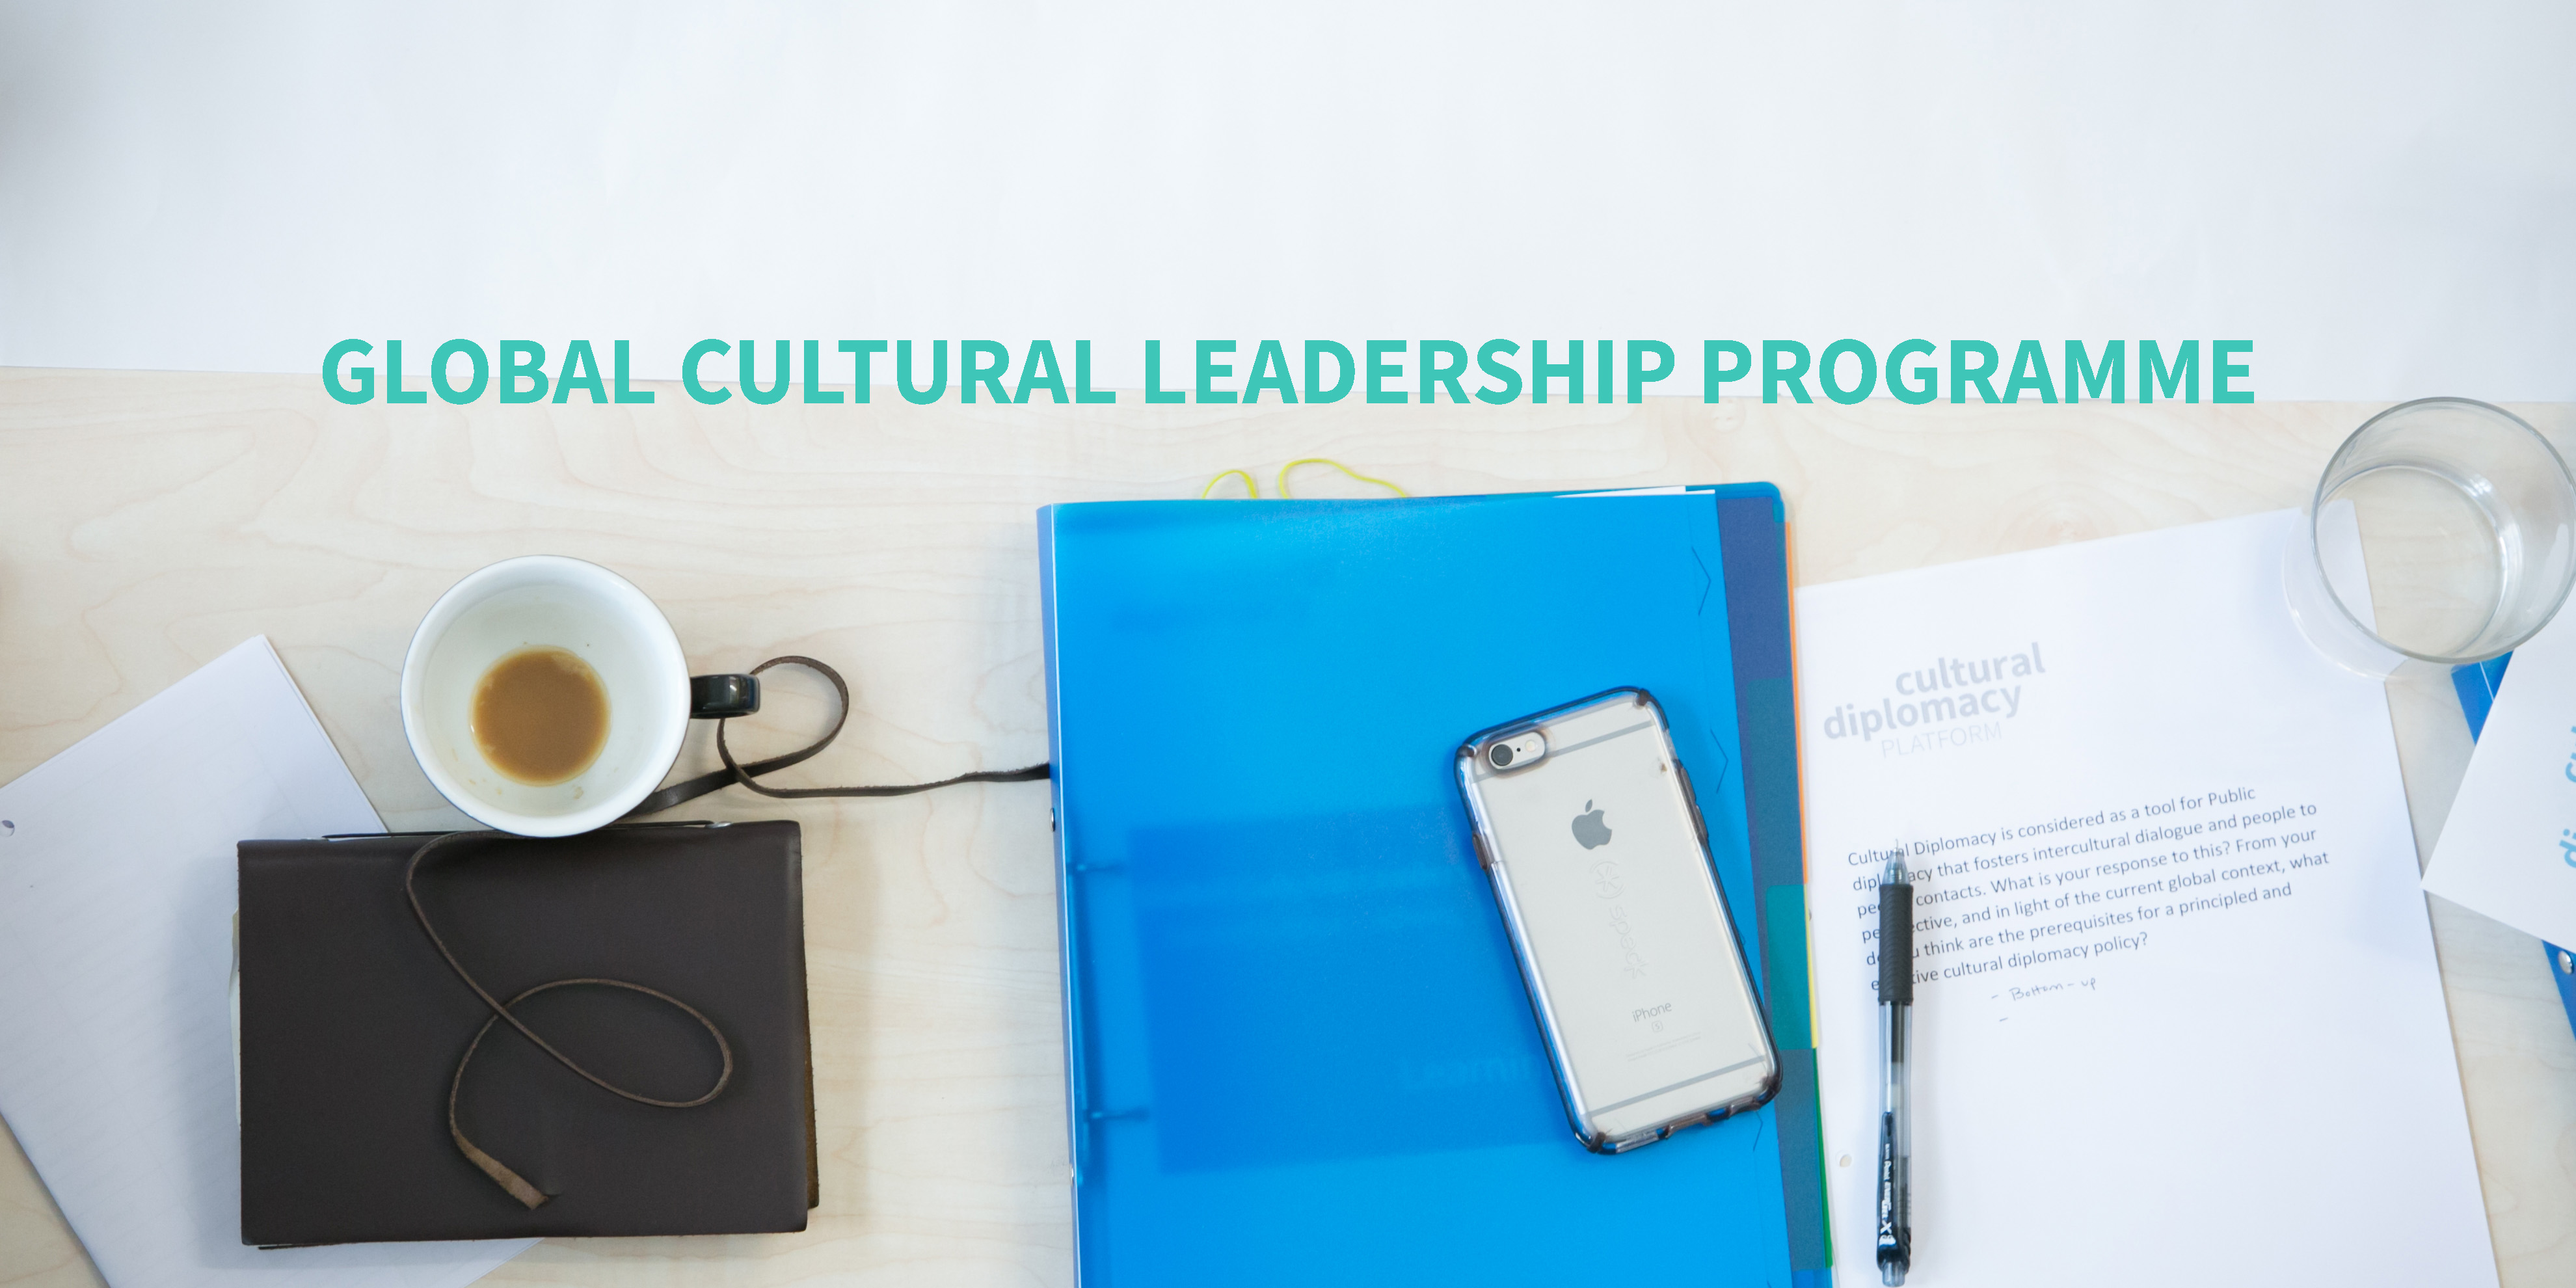 Two years of Global Cultural Leadership Programme